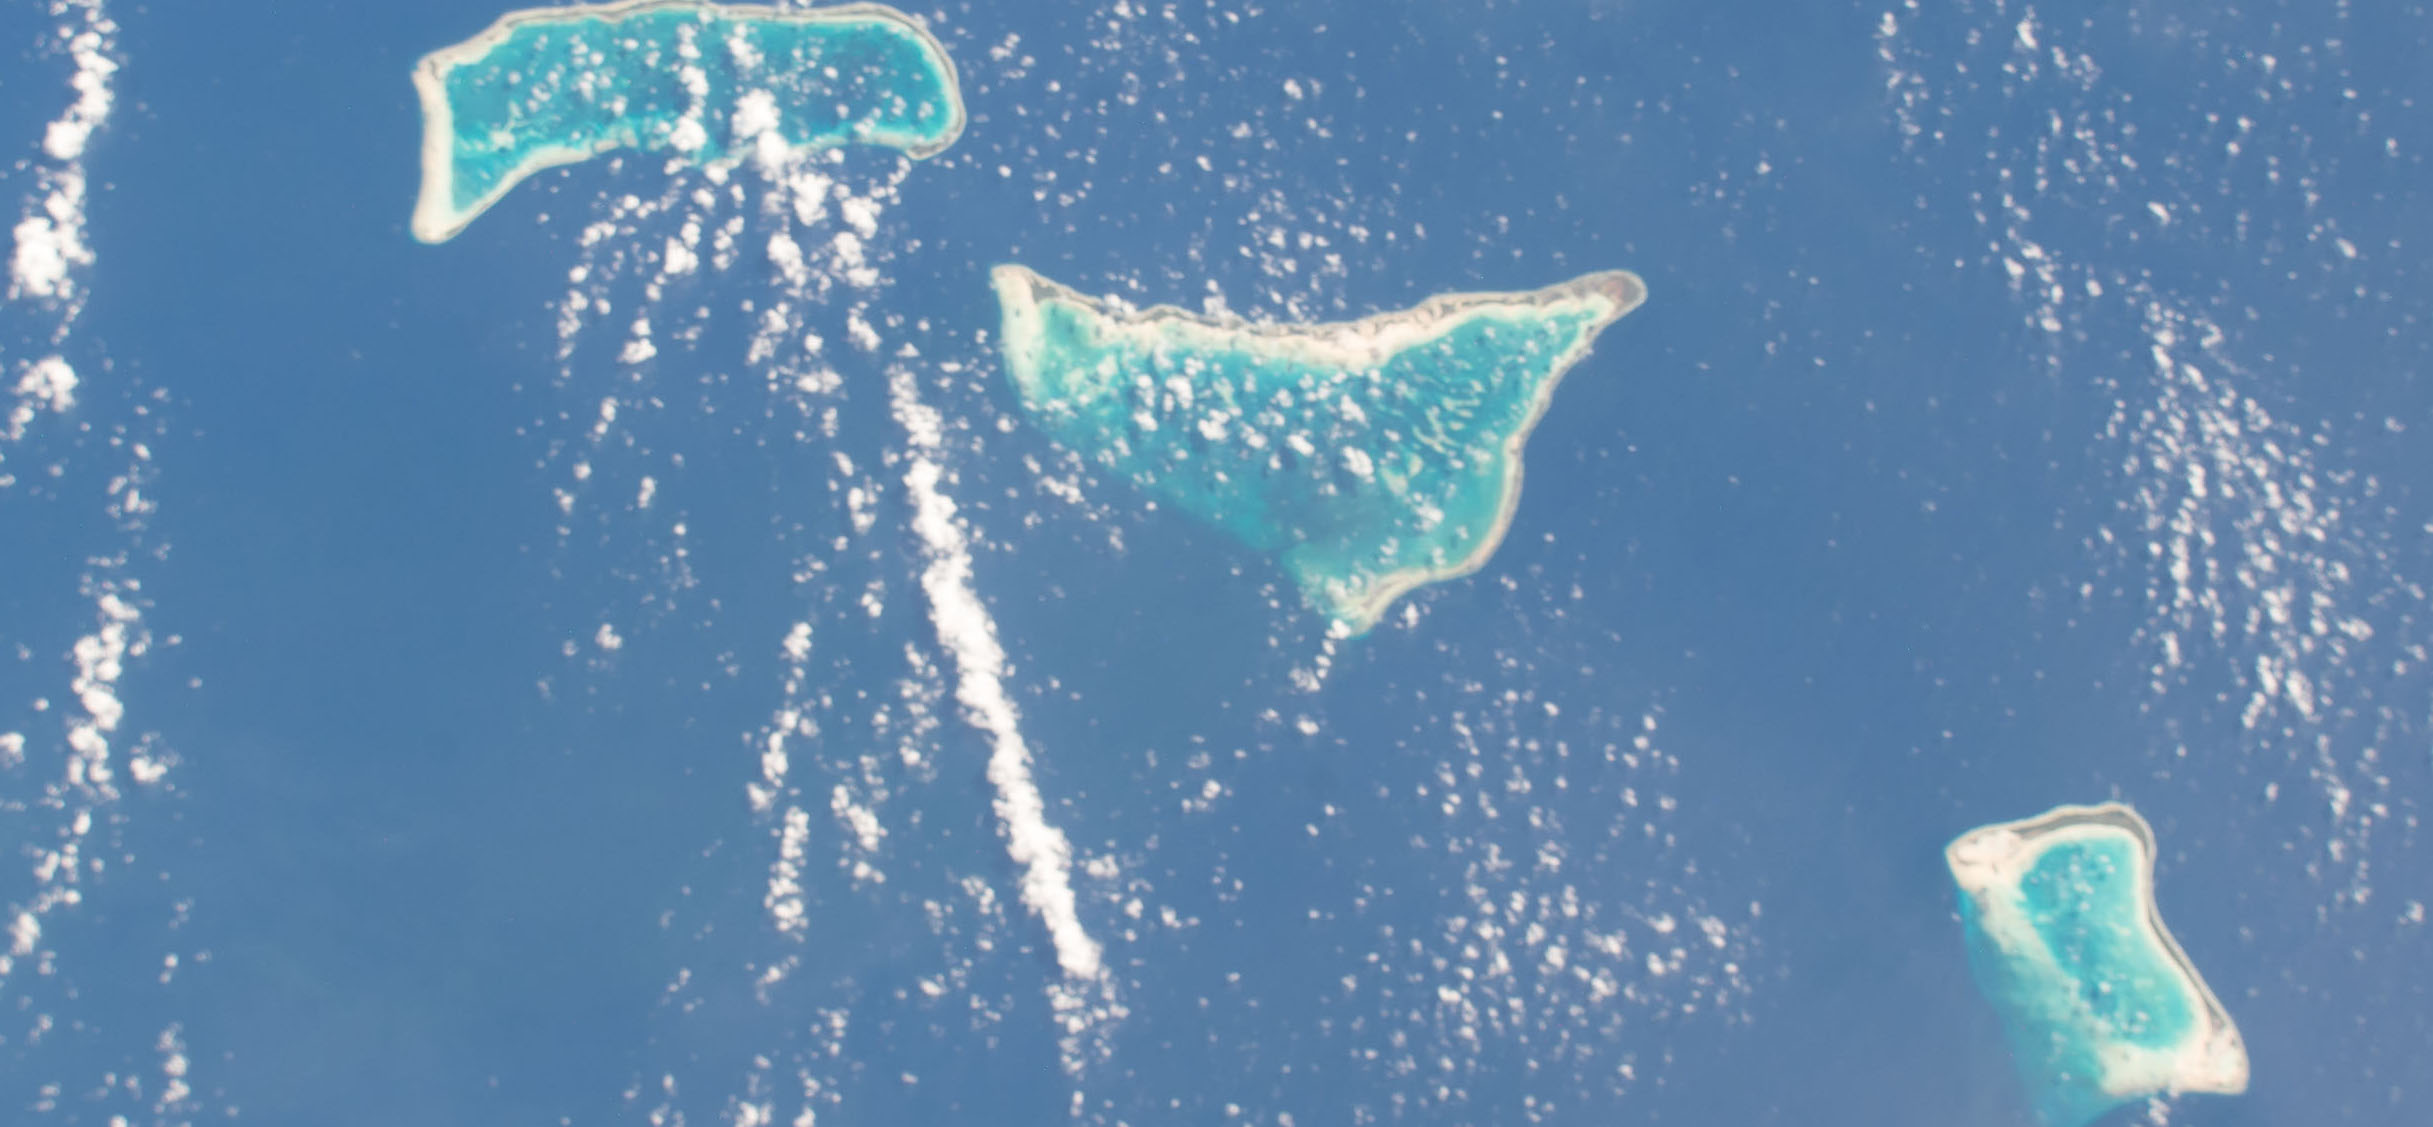 Islands of the Kiribati Republic (Photo: NASA Johnson/Flickr)